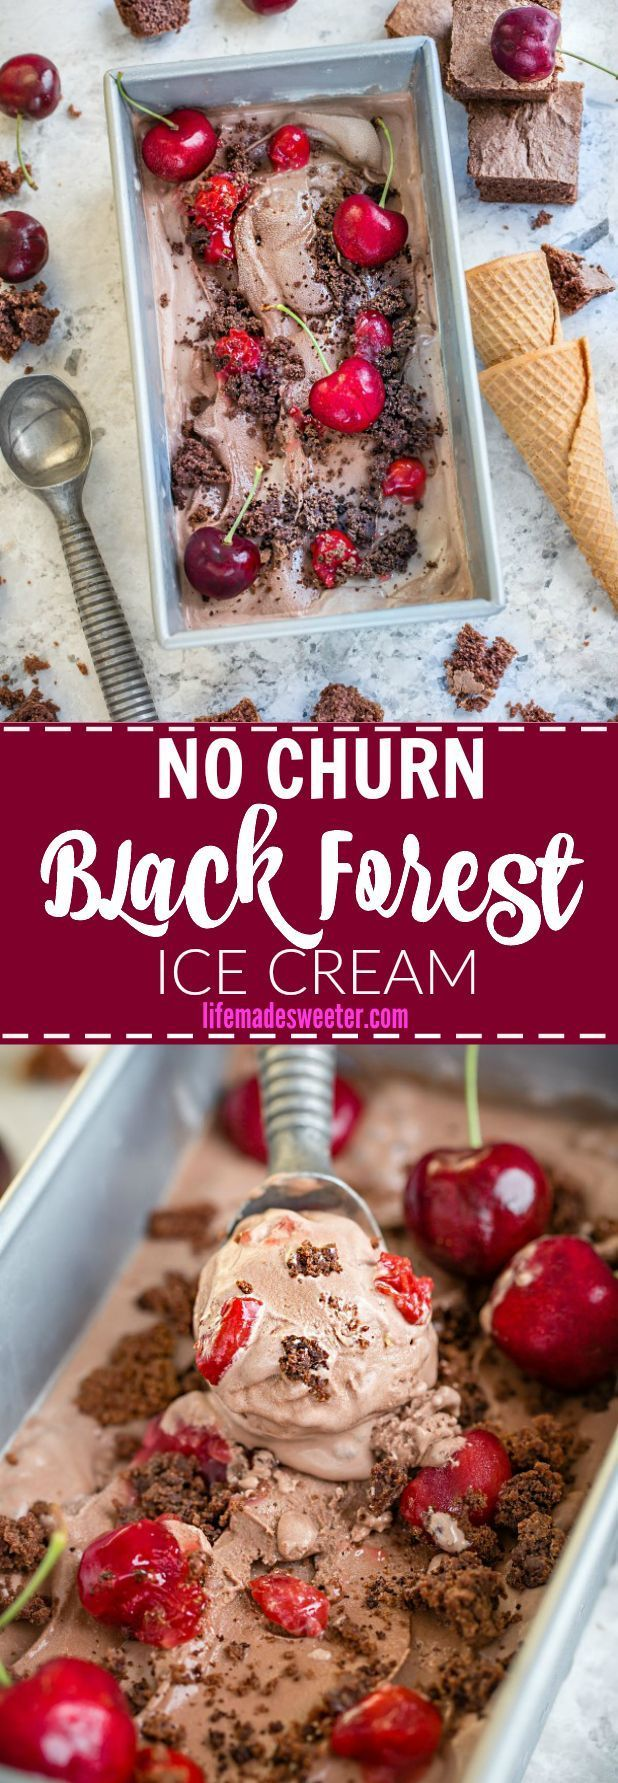 No Churn Black Forest Ice Cream makes the perfect sweet summer treat Best of all, it's so easy to make and combines all the flavors you love about Black Forest Cake and no ice cream maker required!